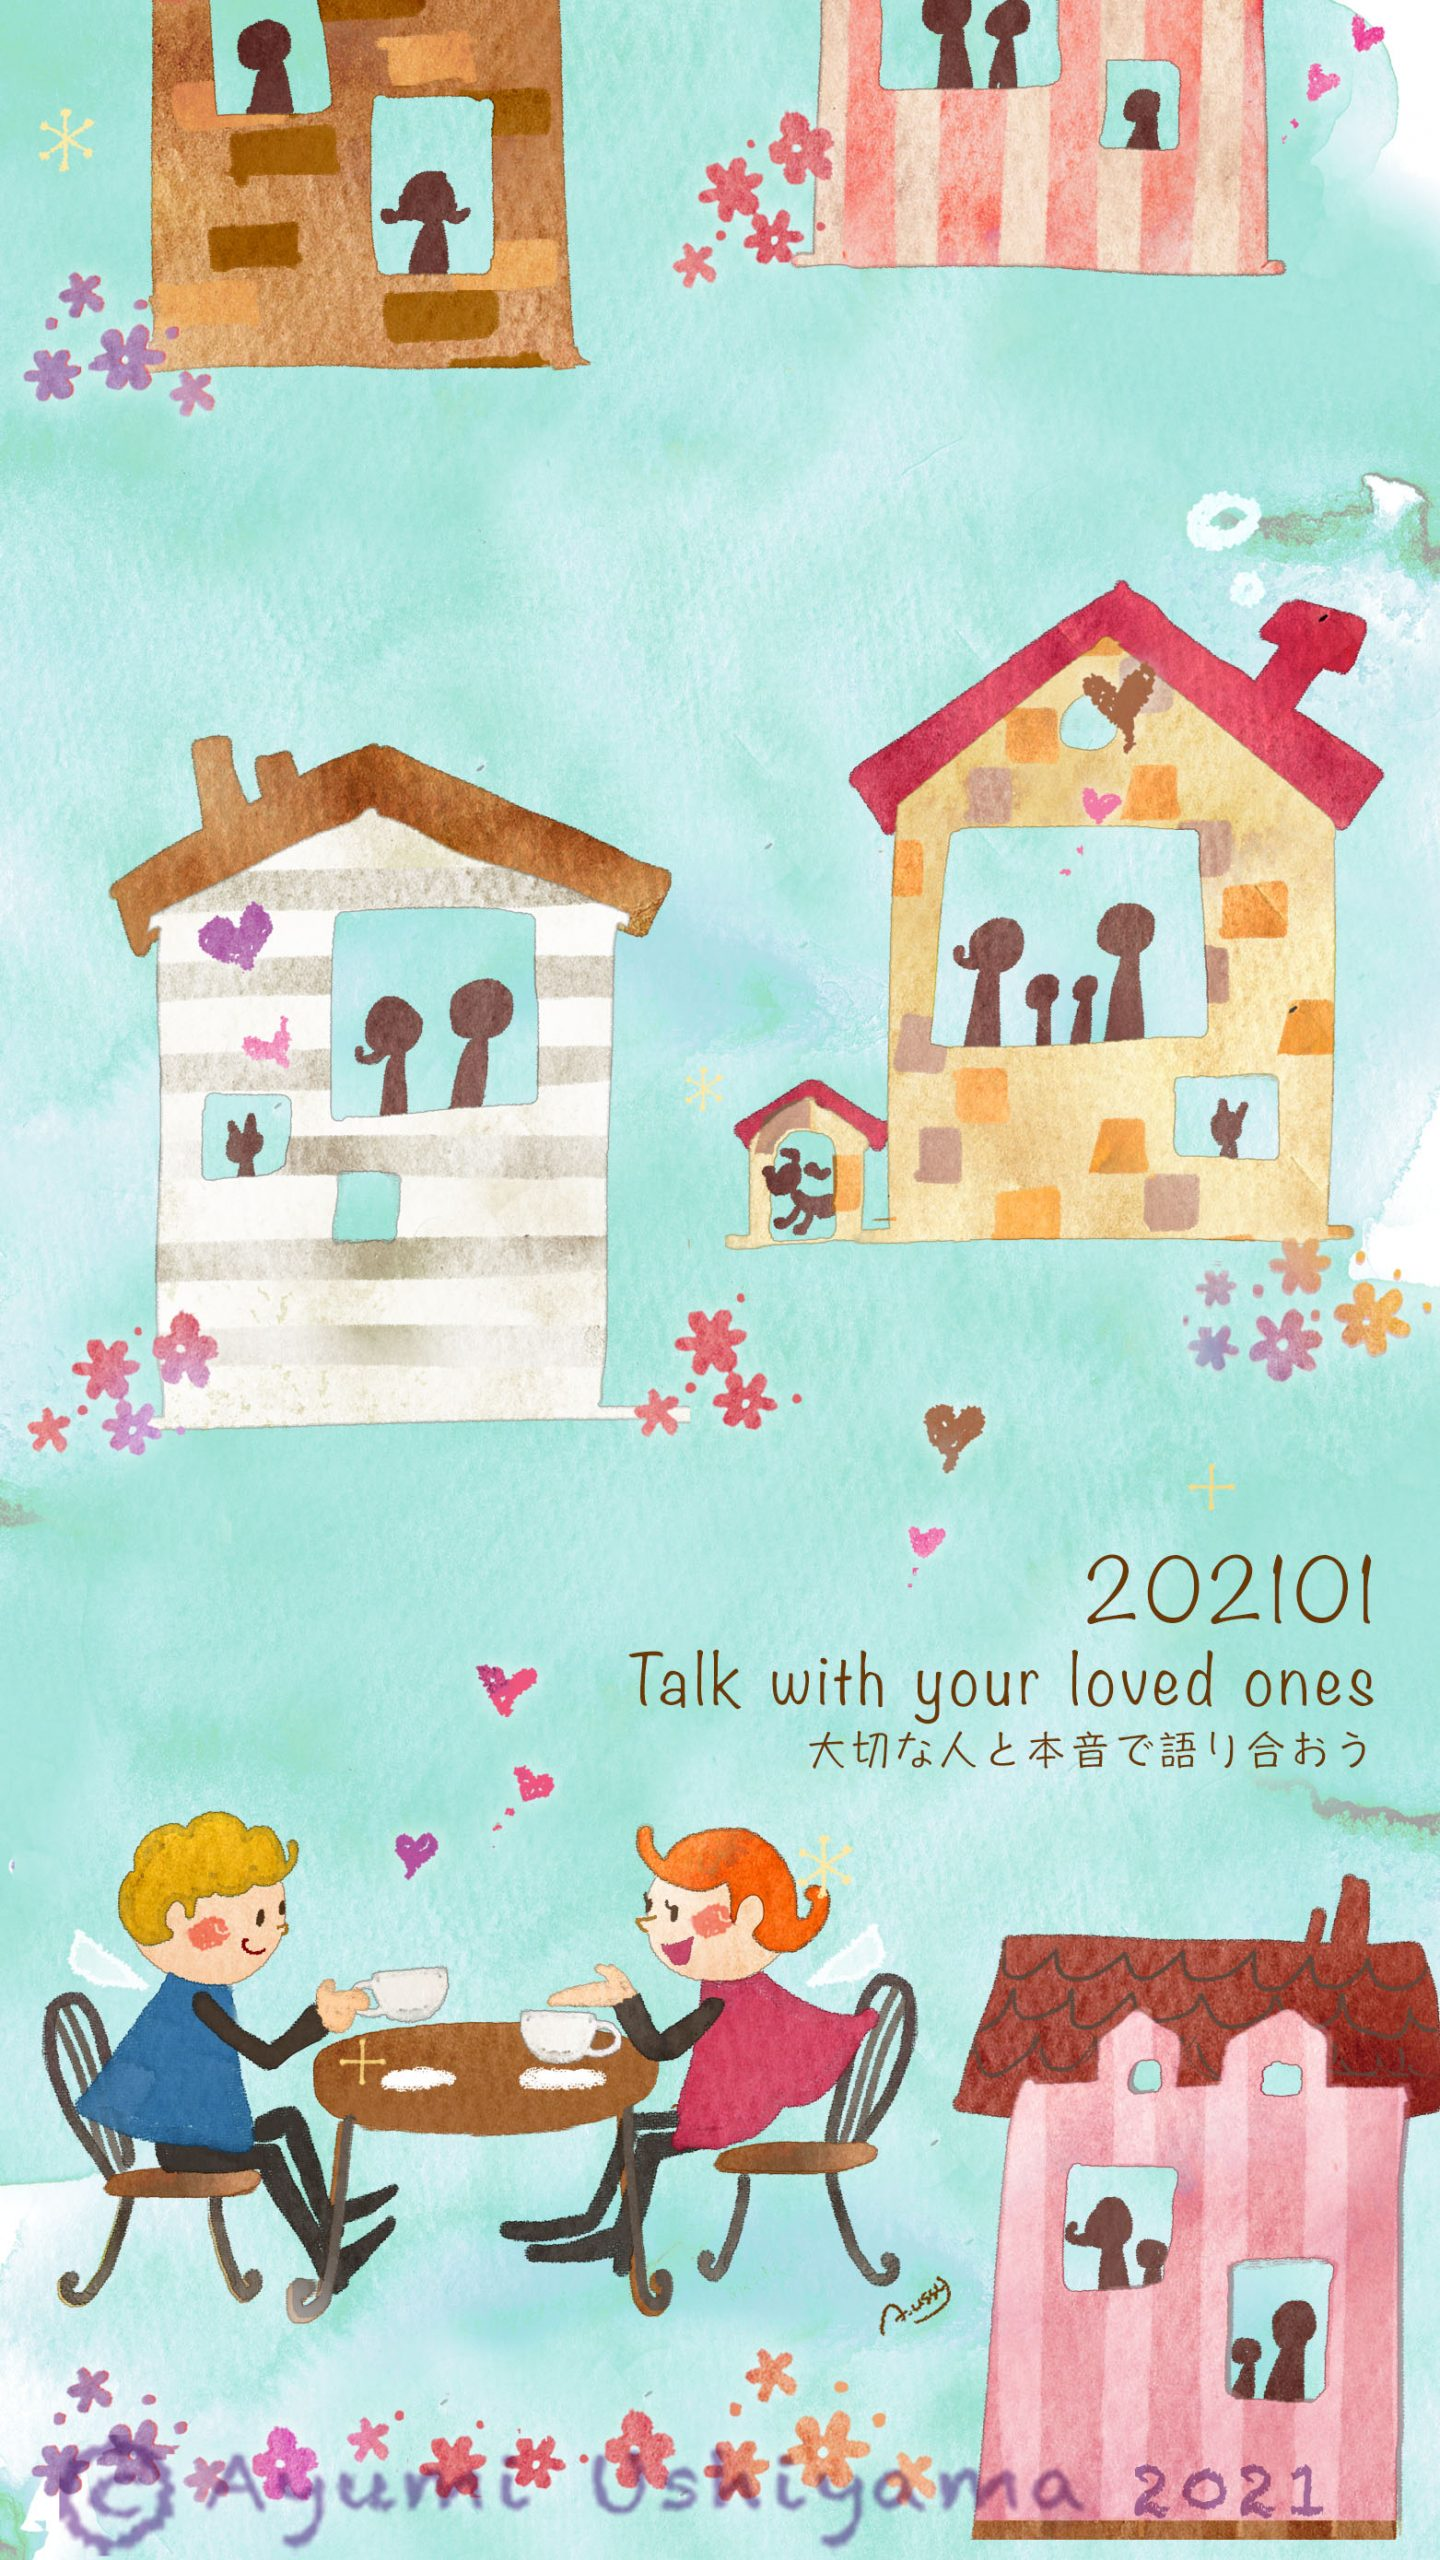 2021.01『Talk with your loved ones』ローマ字